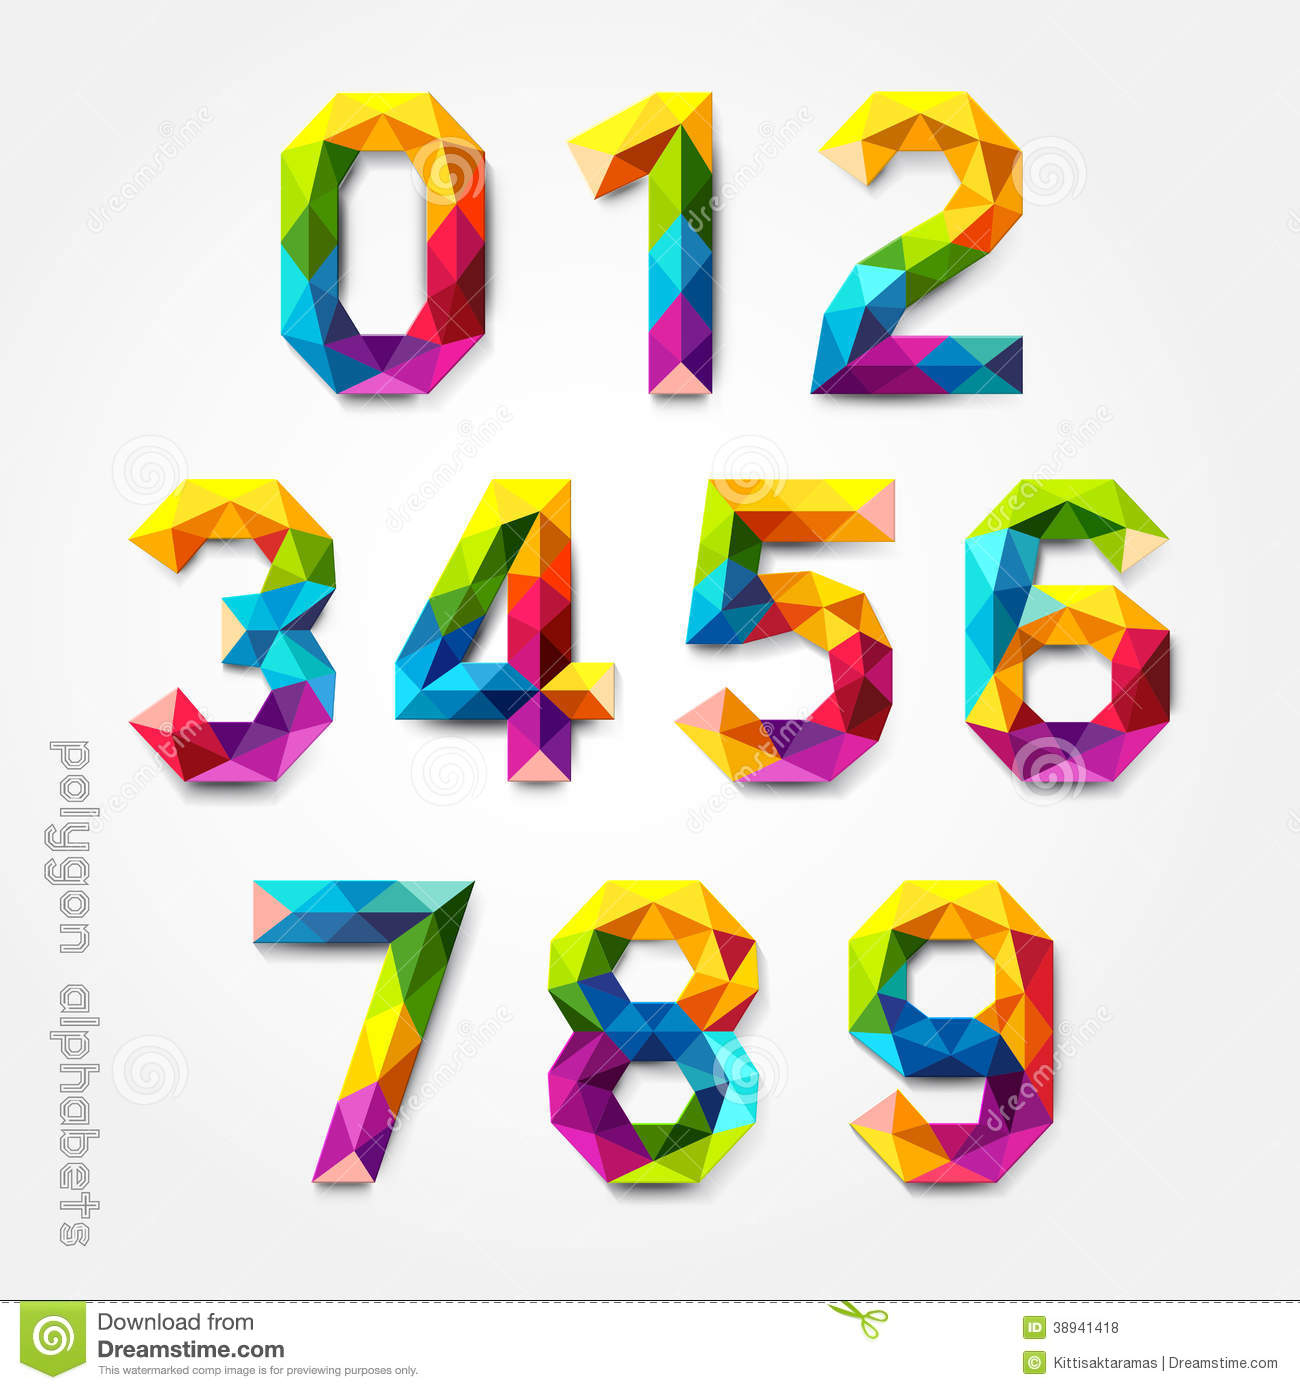 15 colorful number 0 fonts images free colorful fonts for Blueprint number